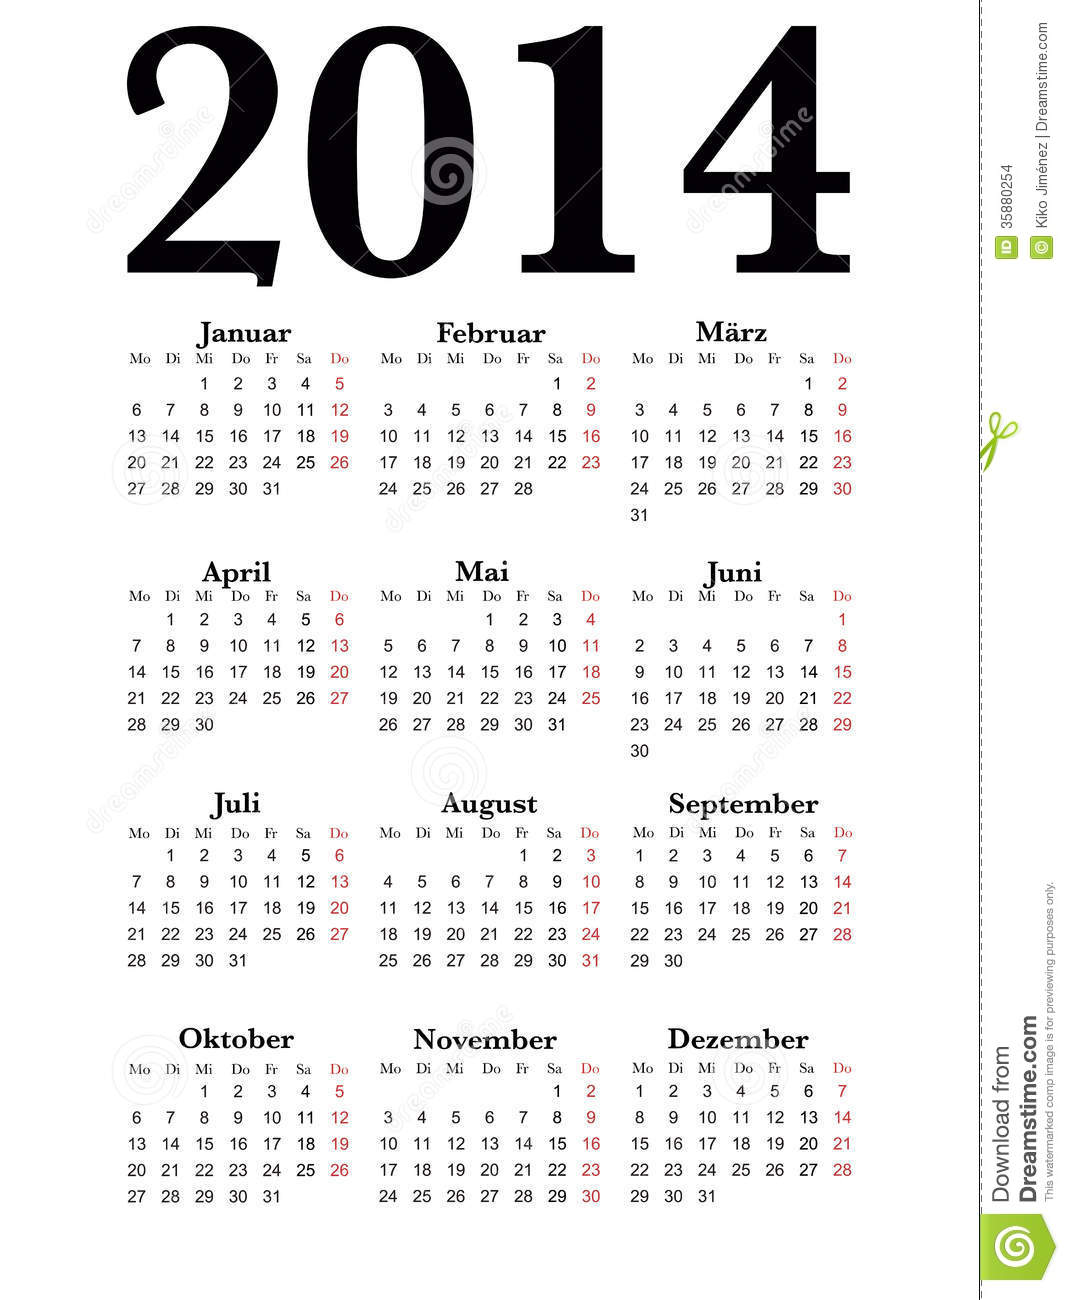 Calendrier allemand 2014